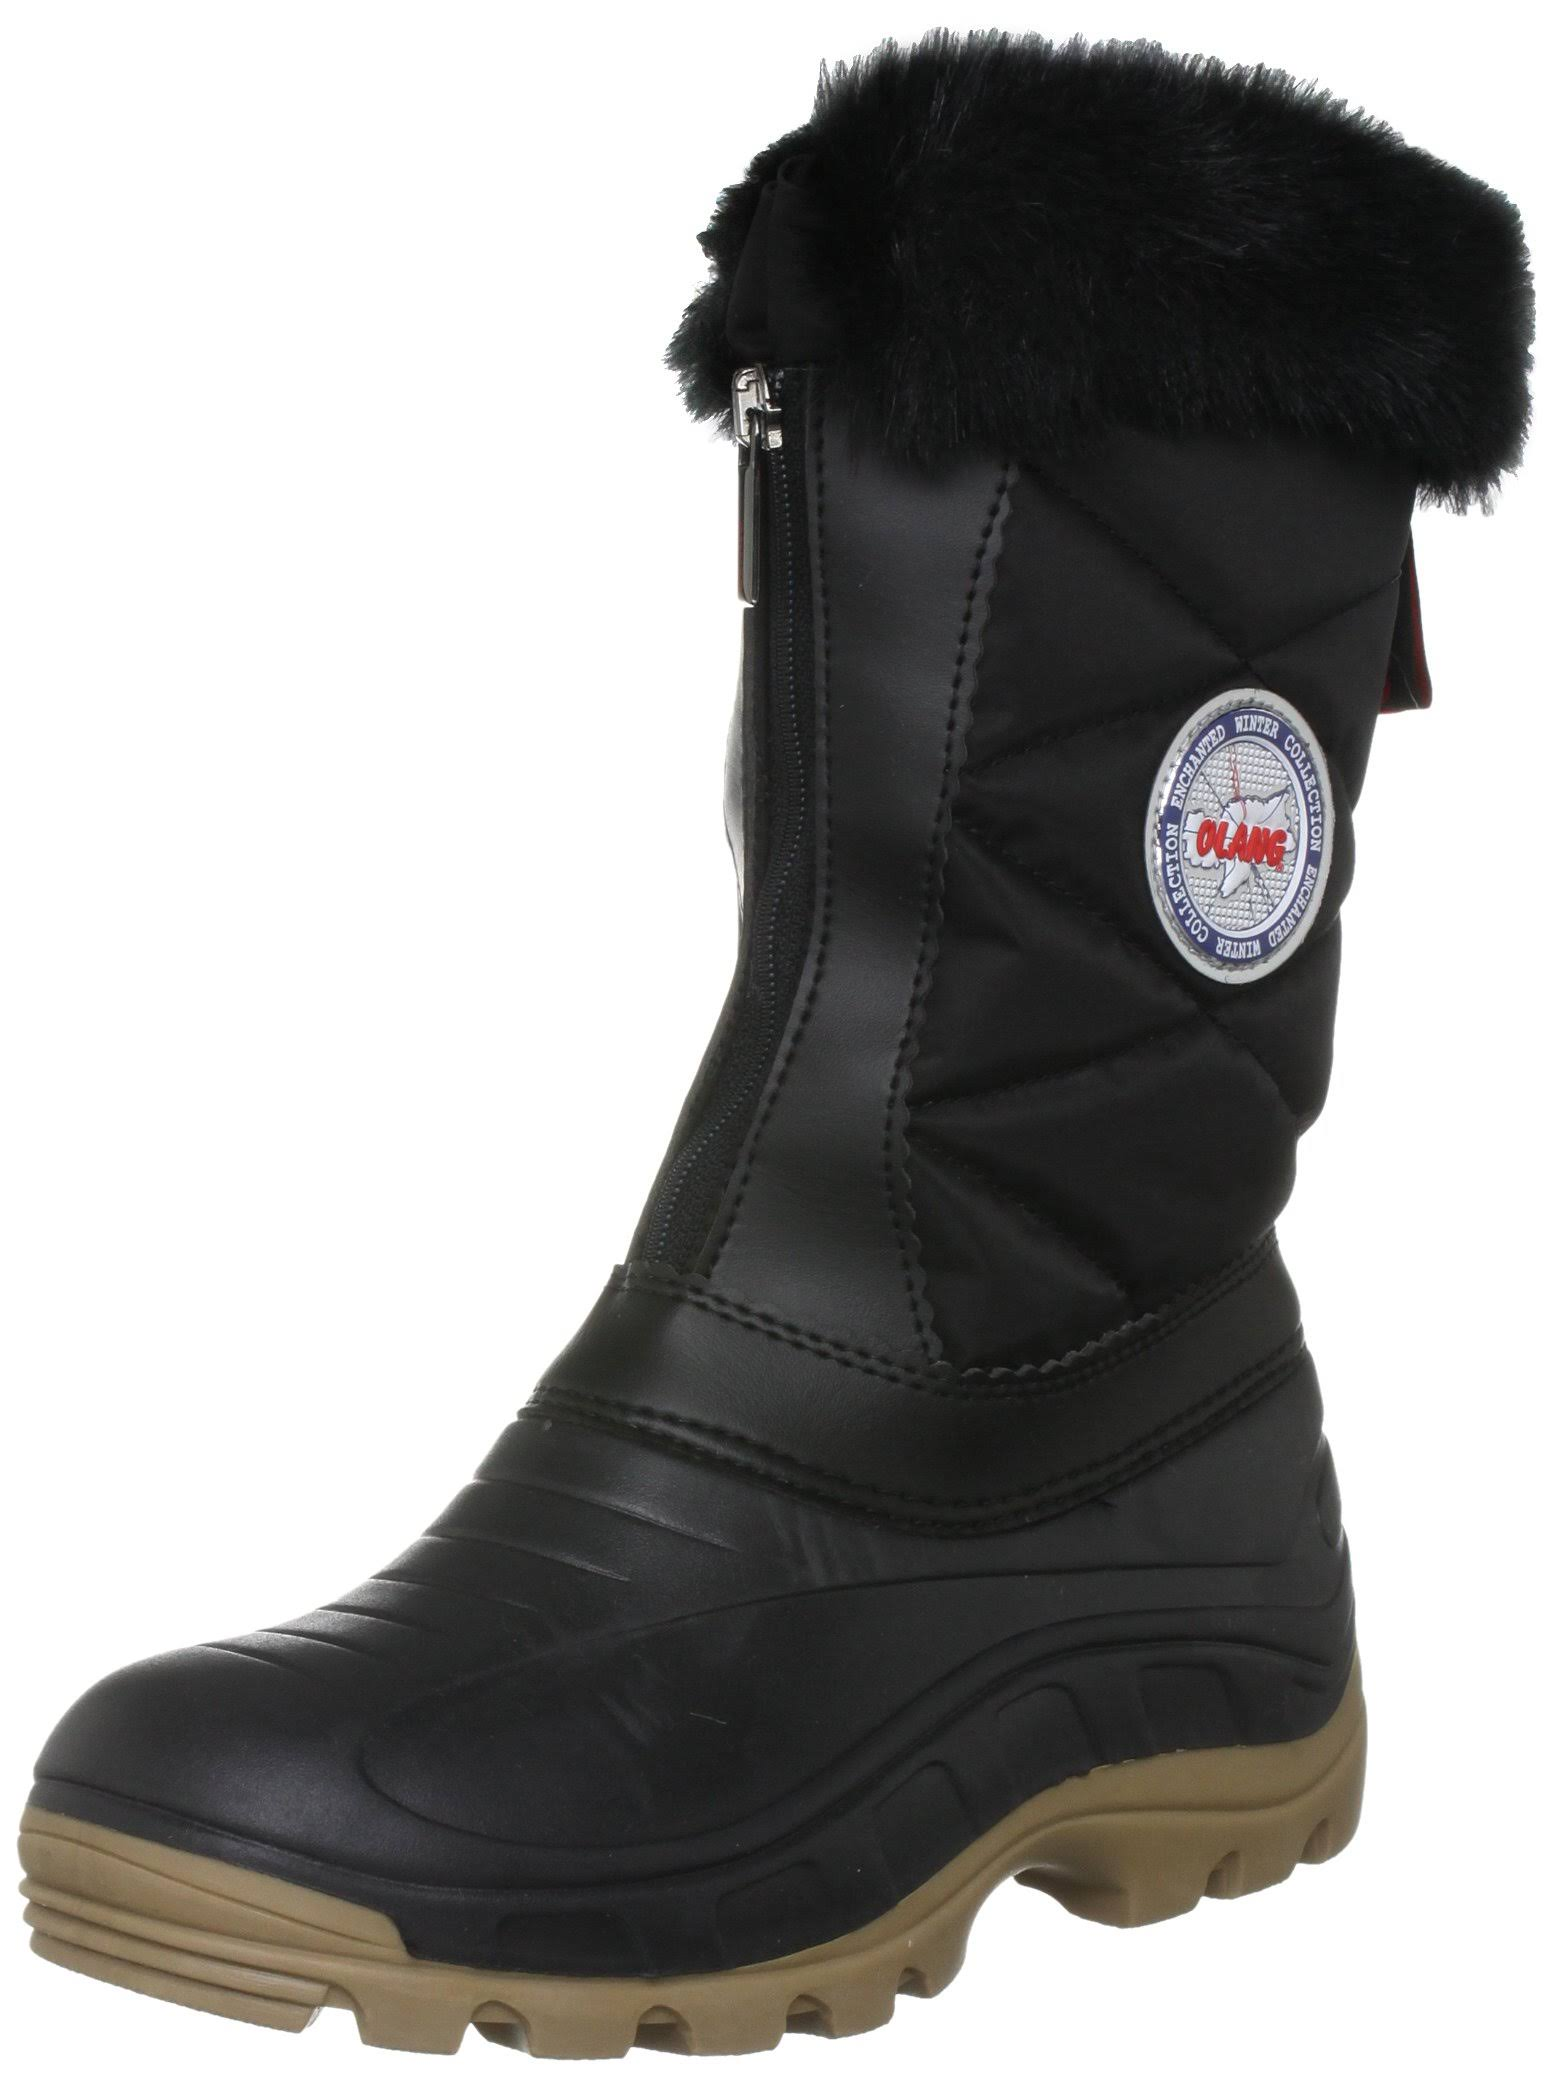 Olang Ladies Nancy Snow Boot